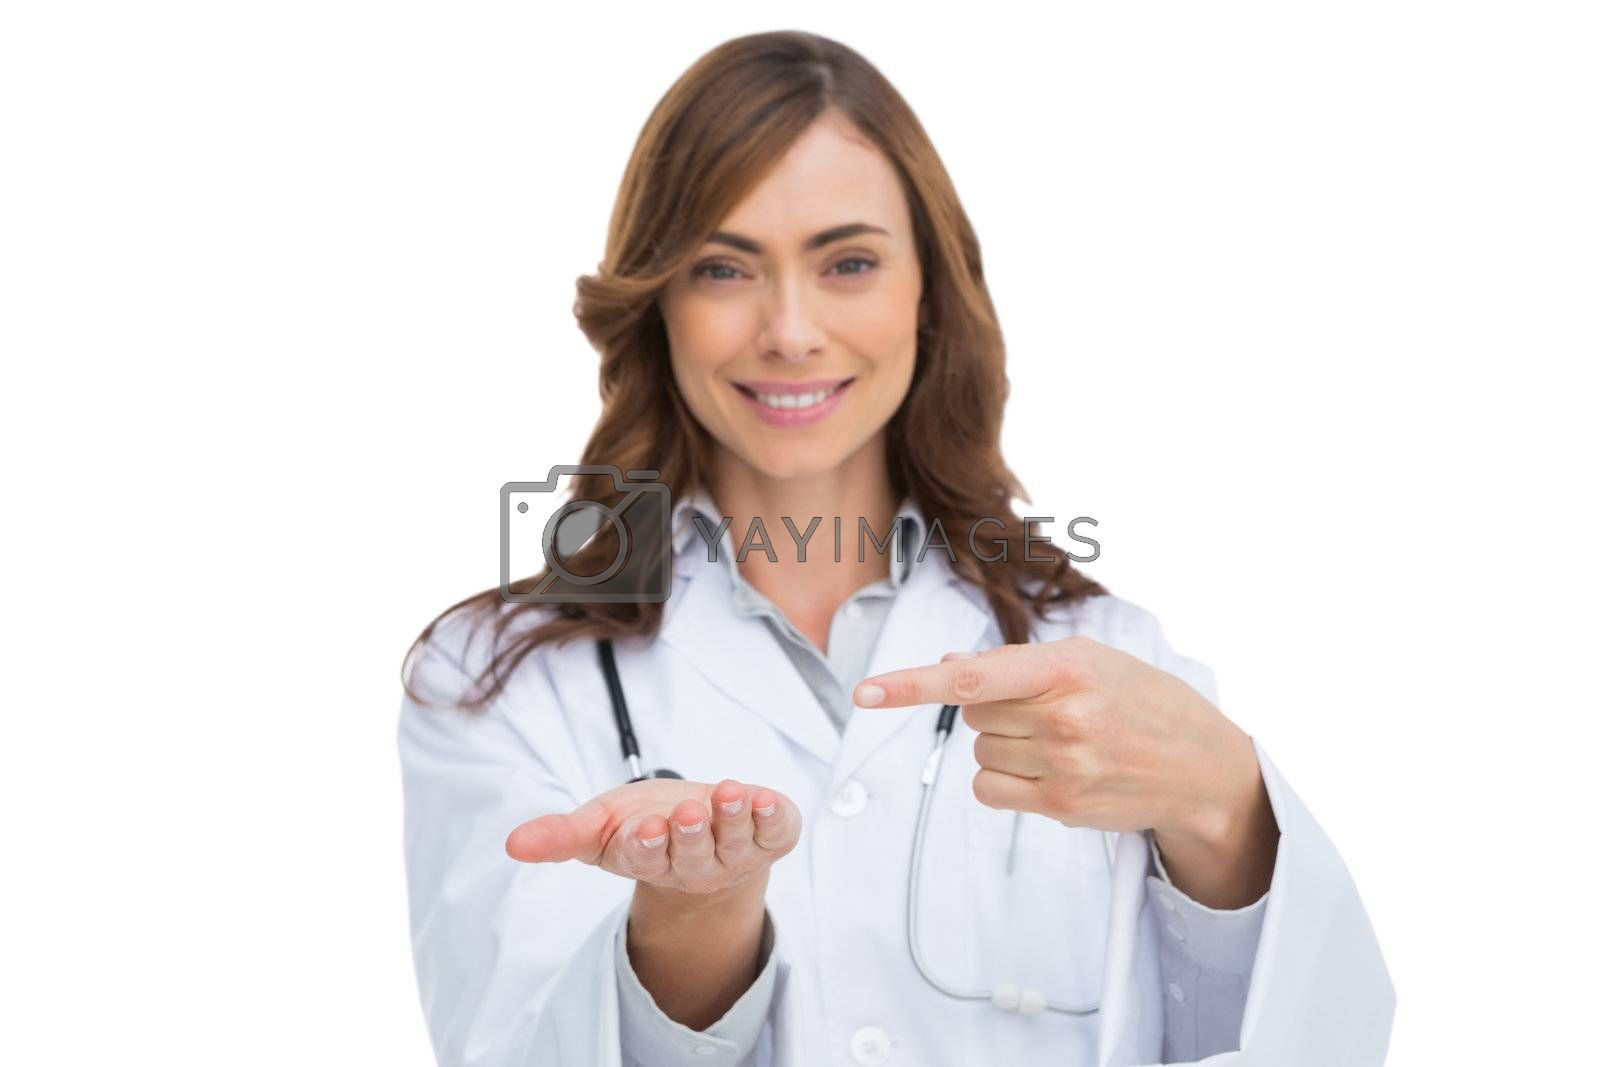 Smiling doctor pointing at something in her hand by Wavebreakmedia